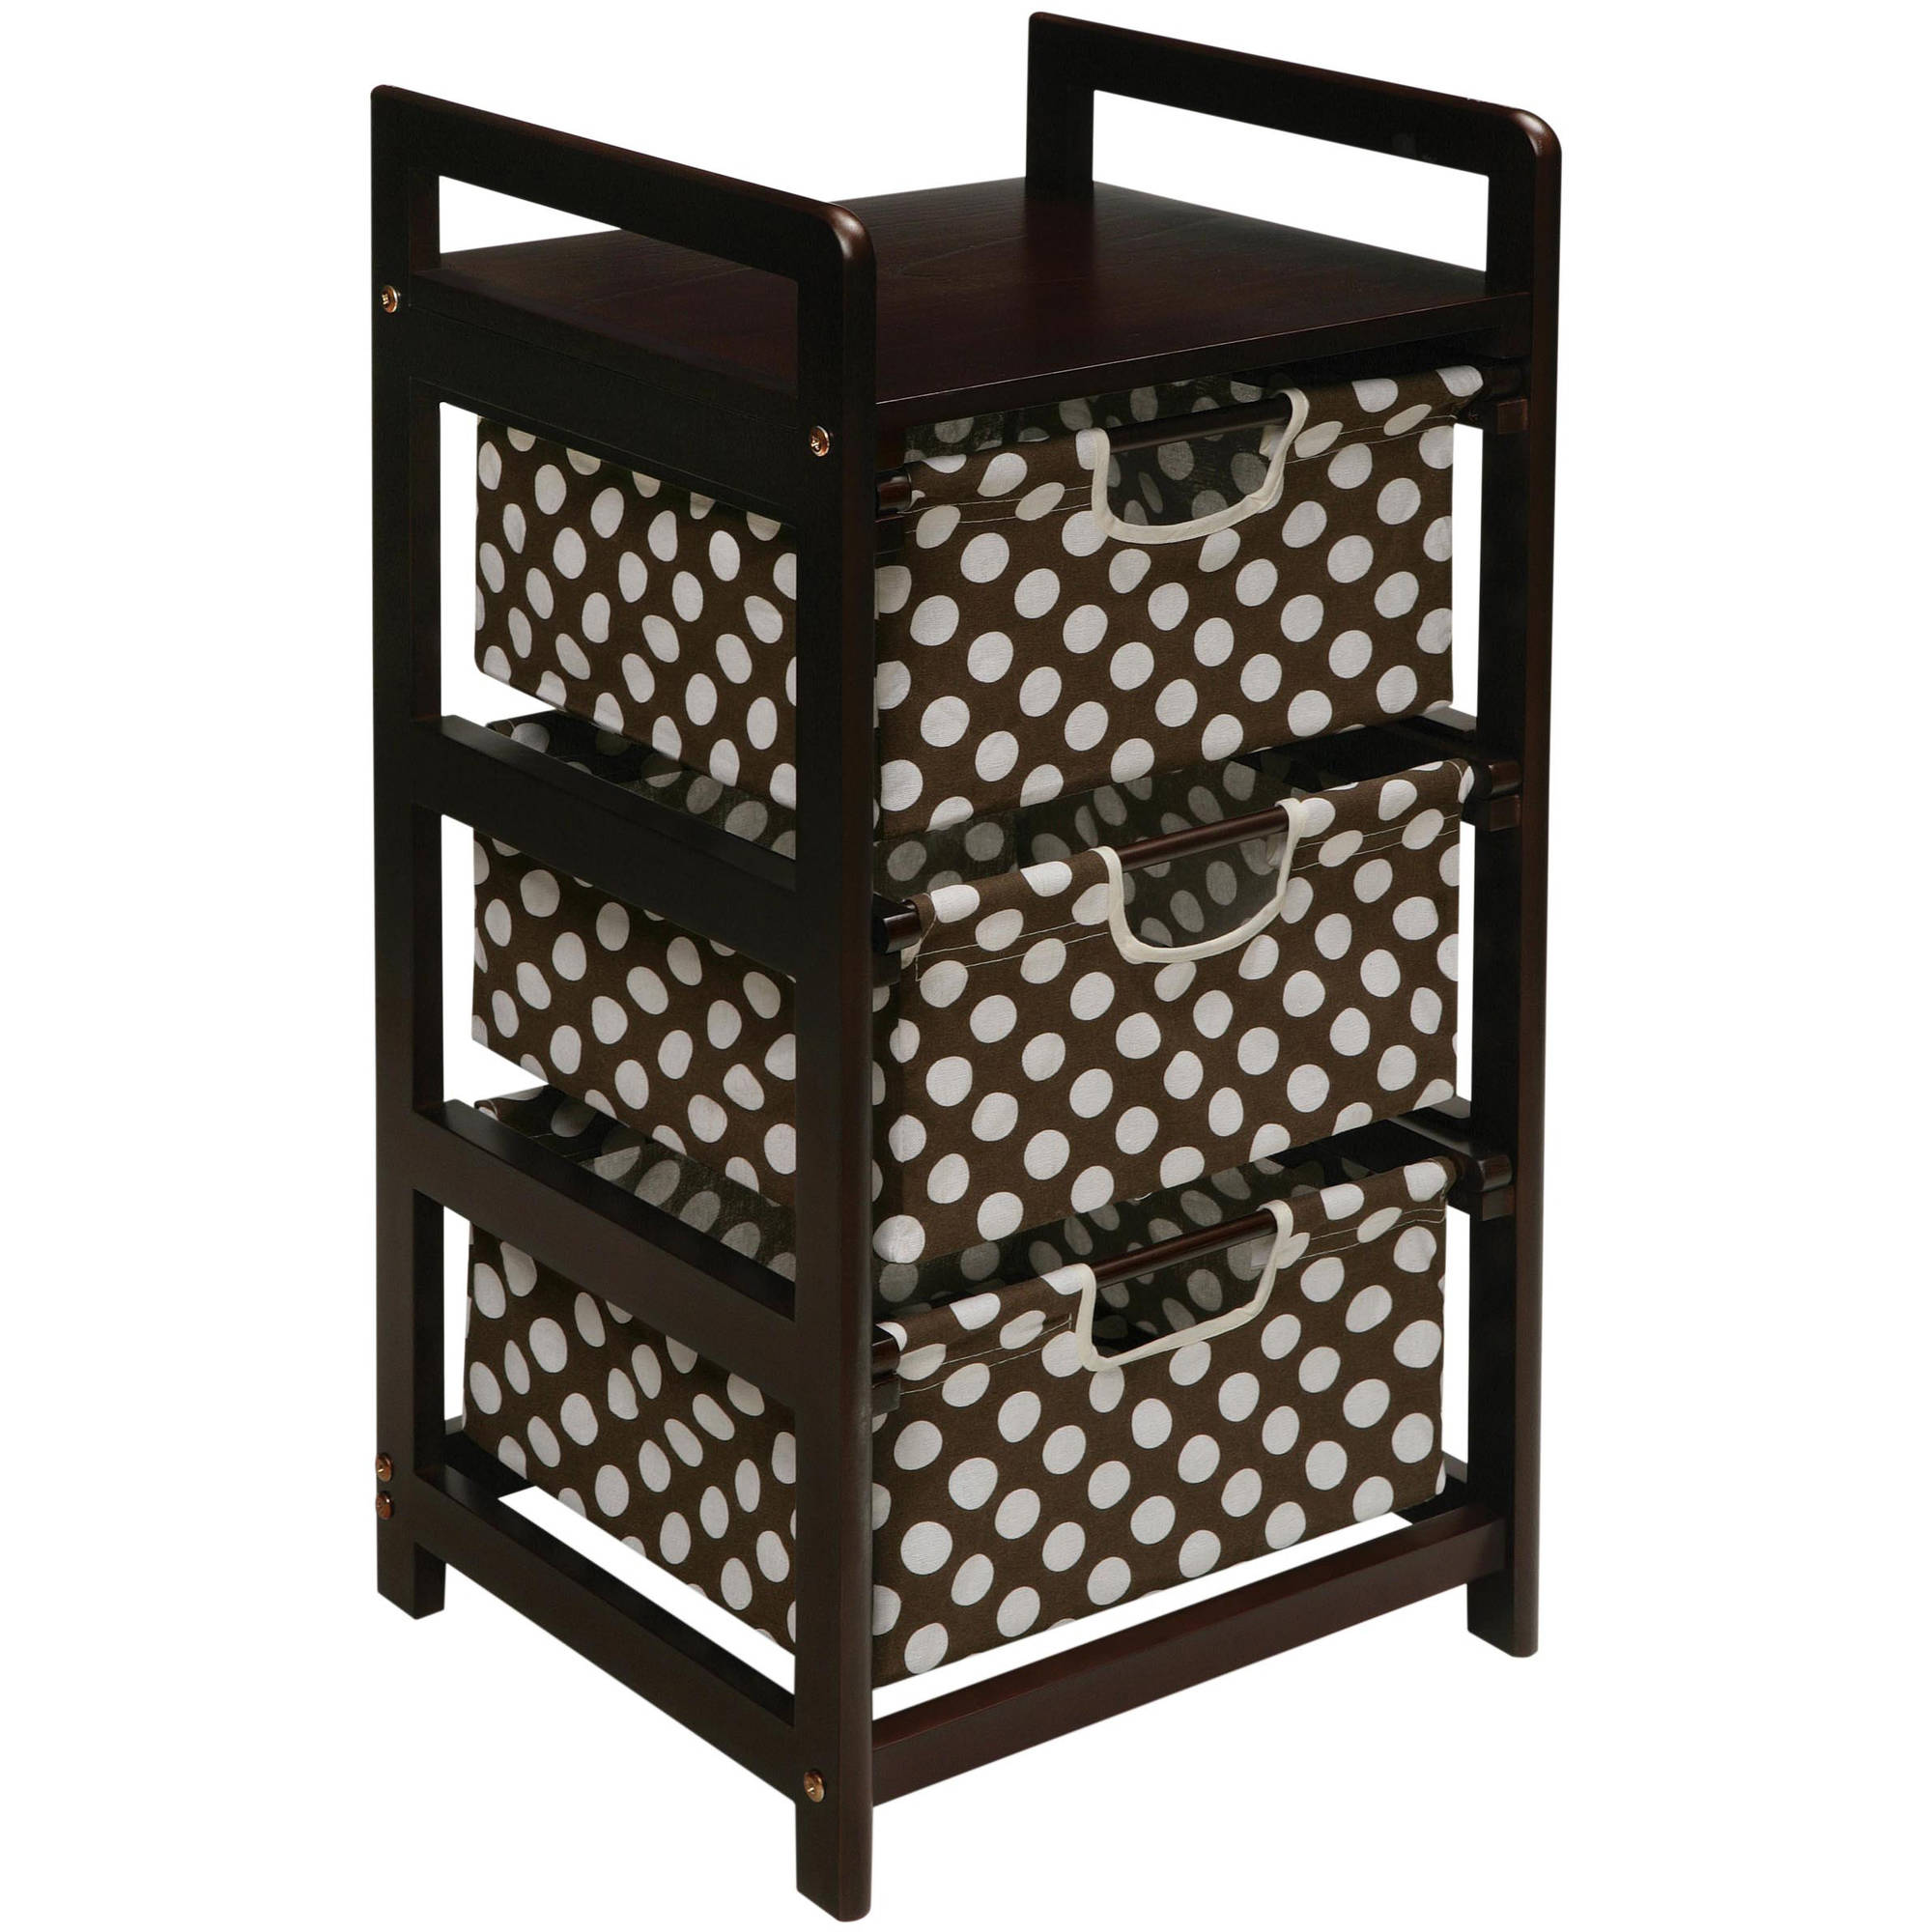 Badger Basket 3-Drawer Hamper Storage Unit, Espresso Finish with Brown Polka Dot Print Drawers by Badger Basket